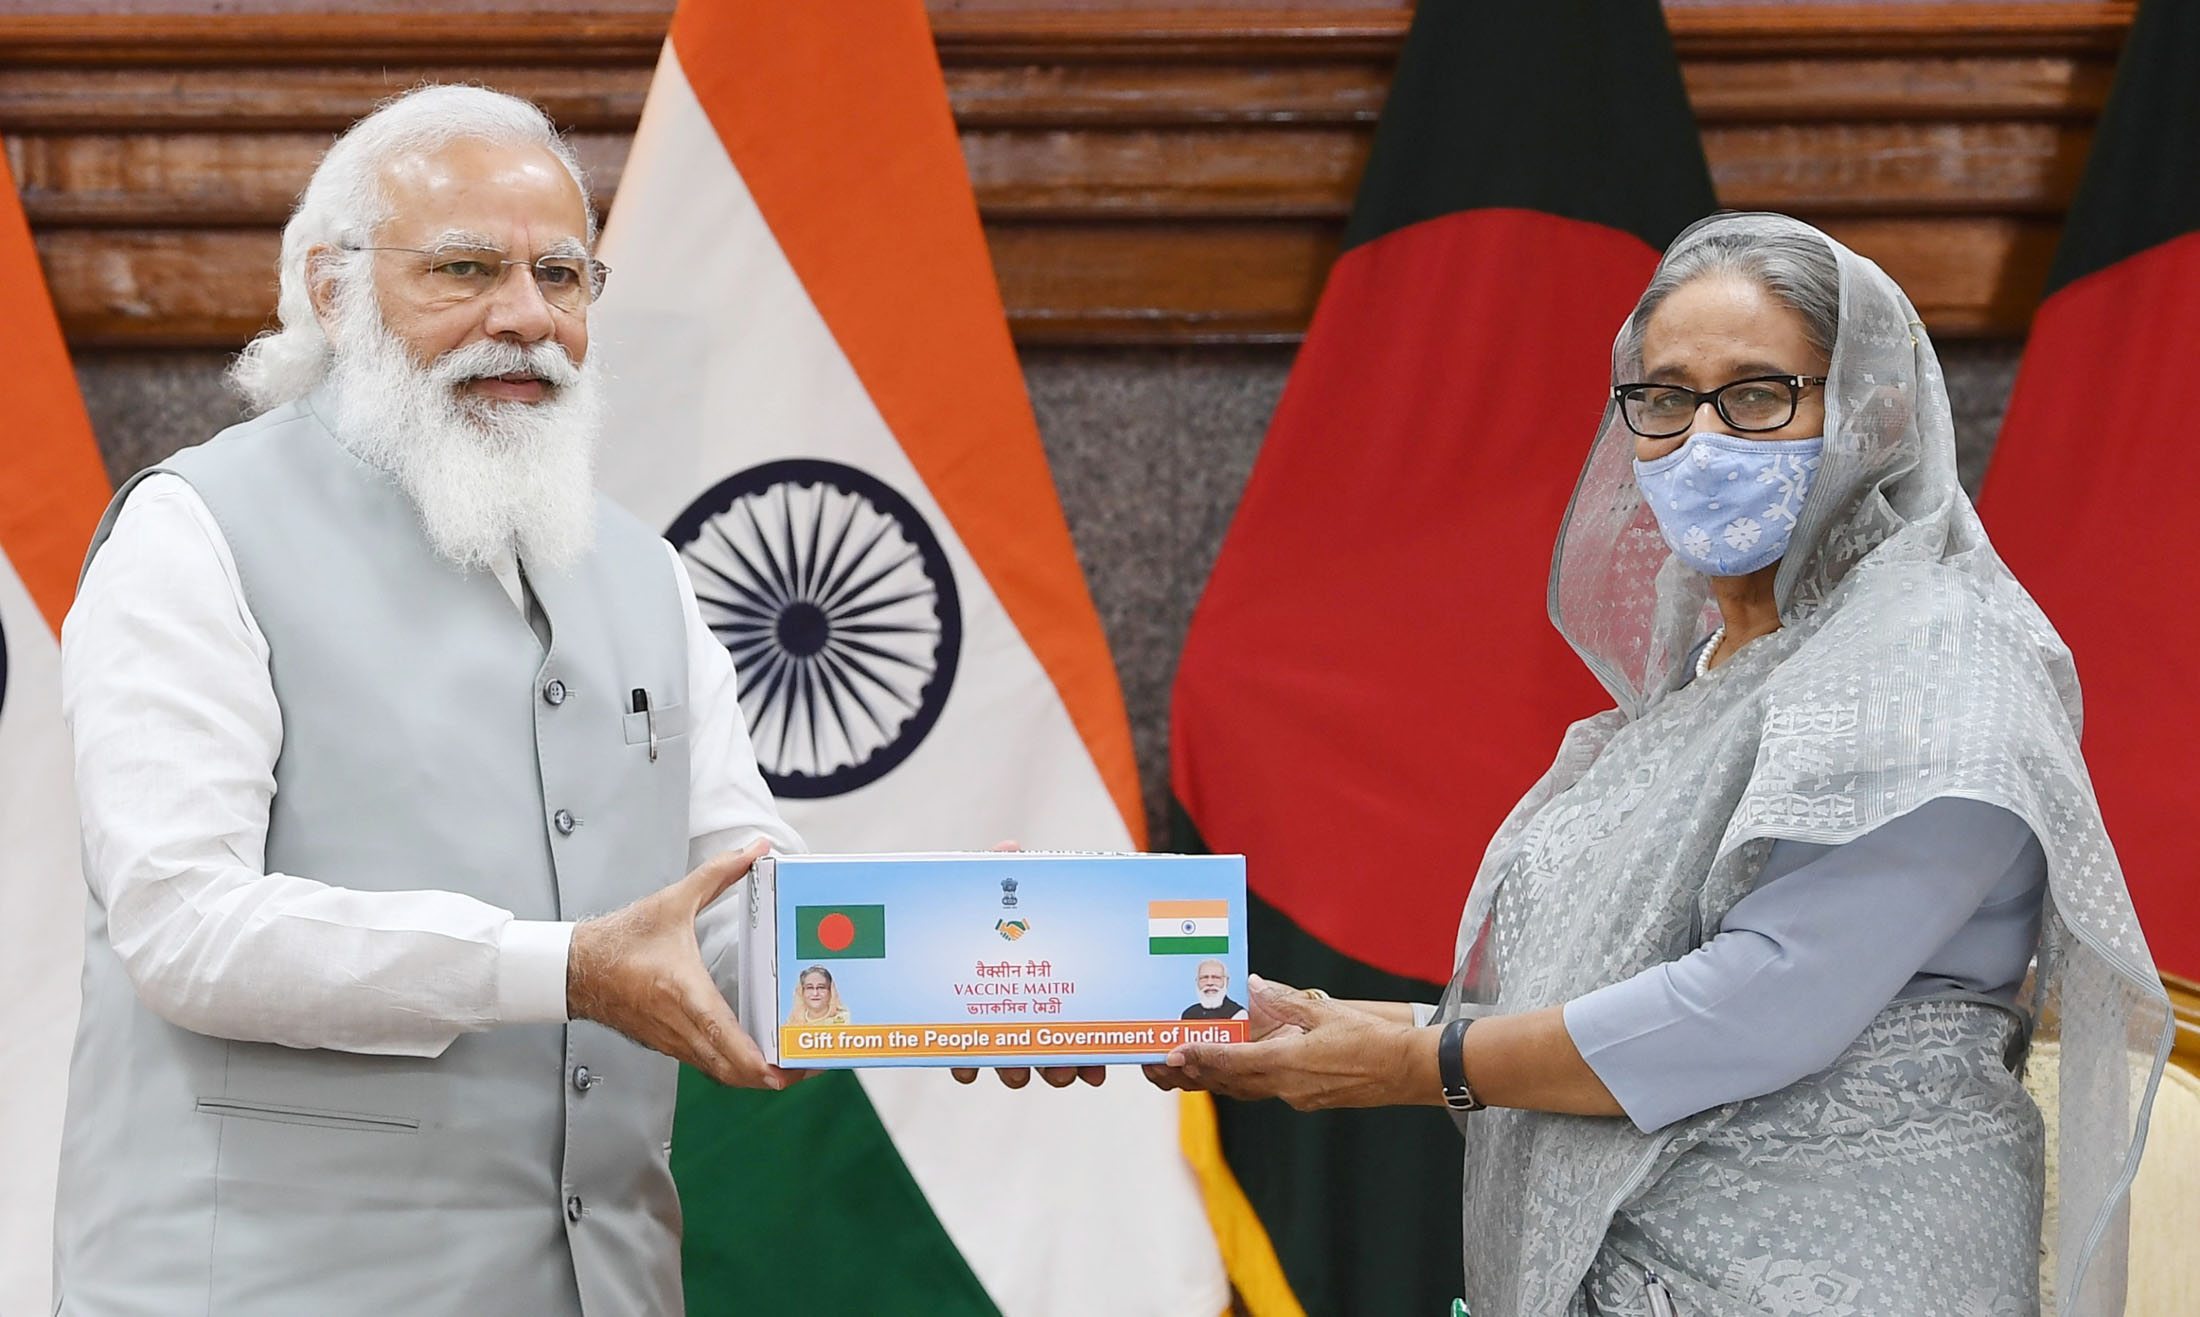 The Prime Minister, Shri Narendra Modi and the Prime Minister of Bangladesh, Ms. Sheikh Hasina at the inauguration of the various projects in Bangladesh, in Dhaka, Bangladesh on March 27, 2021.